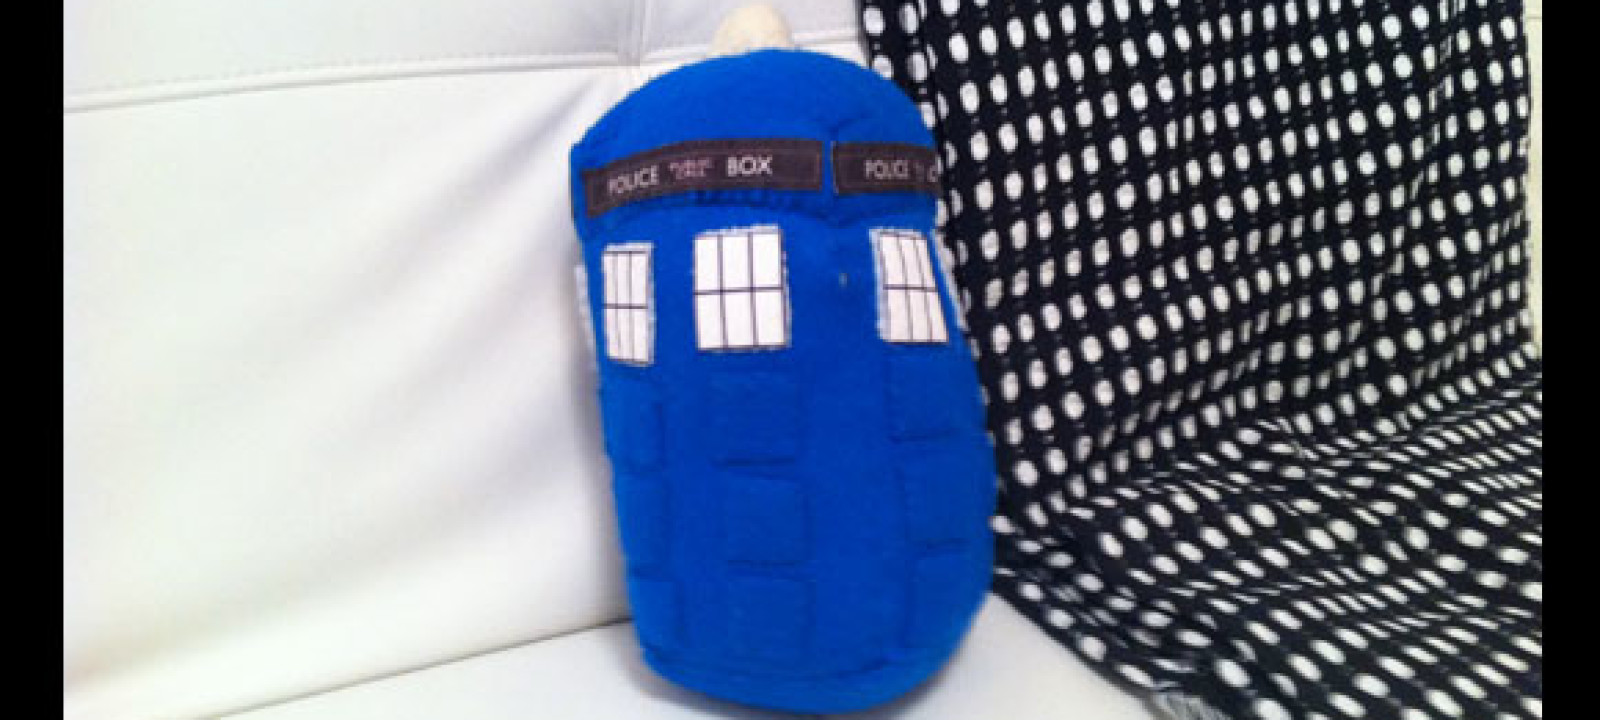 With The Nerdist special premiering tonight (September 24) at 10/9c with guests Matt Smith and Craig Ferguson, Nerdist host Chris Hardwick has generously agreed to open up his personal collection of Doctor Who items. Many of them are gifts from some astonishingly creative fellow Whovians. The TARDIS pillow was handmade by Emily Greenhause (@HeatherMason76).